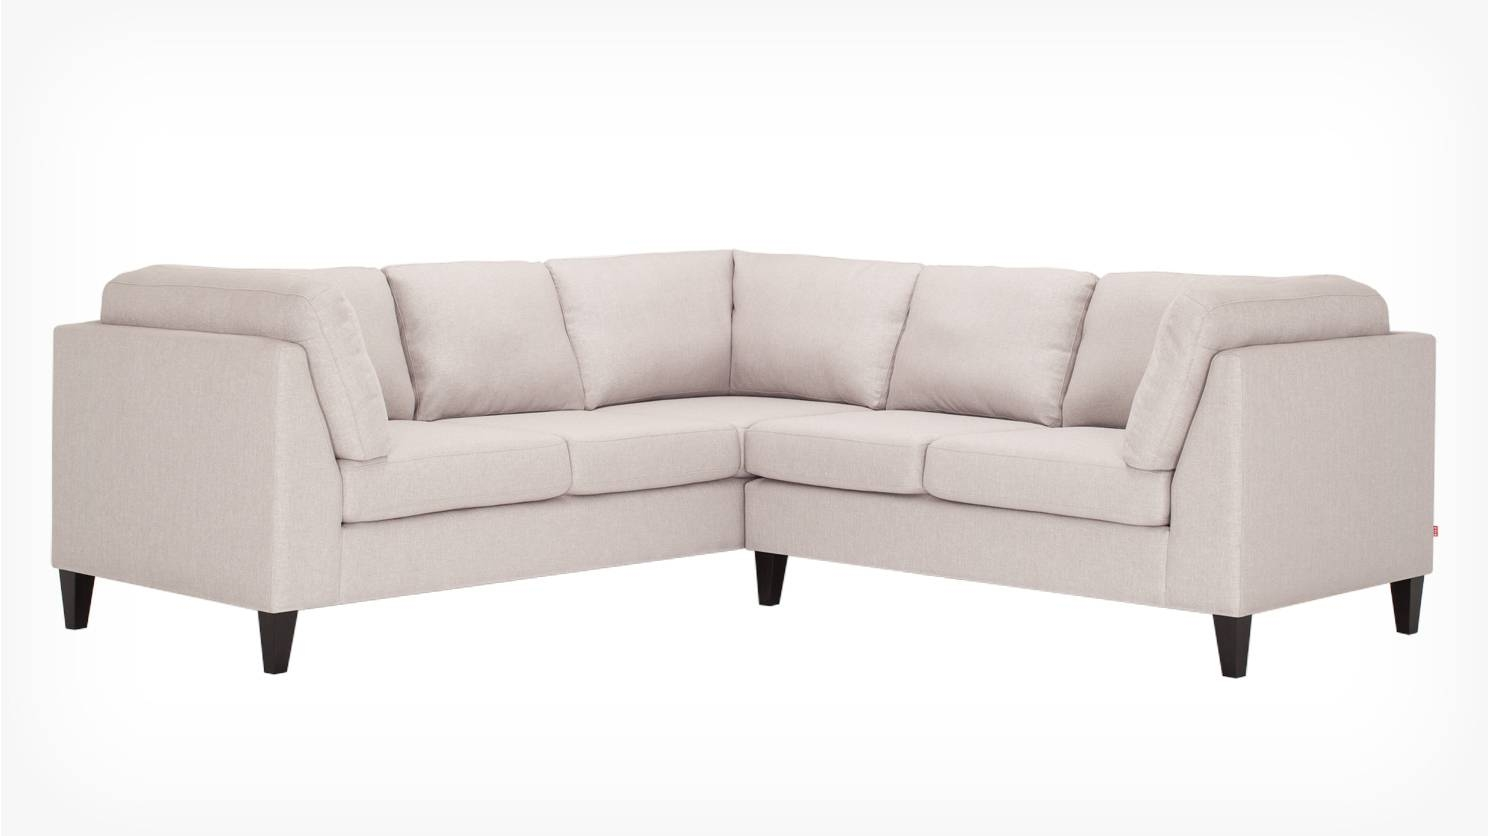 Eq3 | Salema 2-Piece Sectional Sofa - Fabric with regard to Apartment Size Sofas And Sectionals (Image 16 of 30)